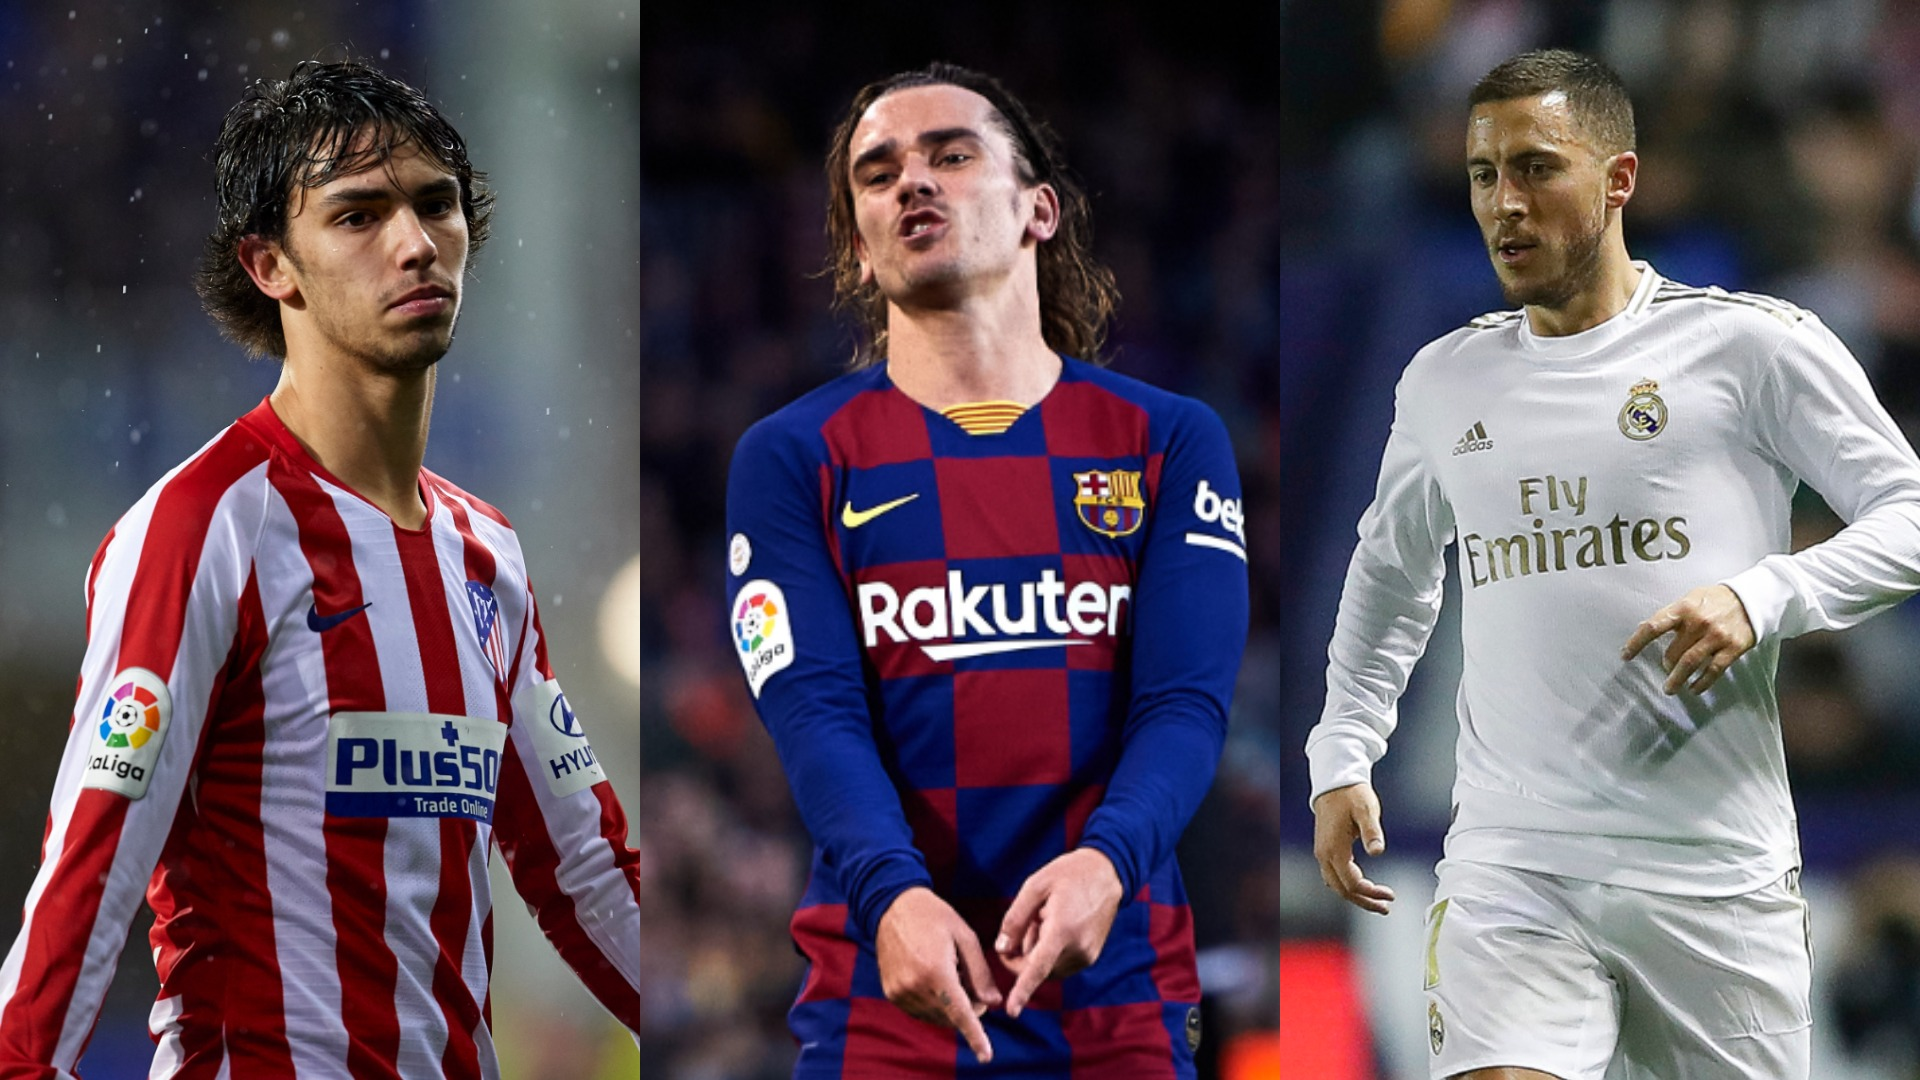 Joao Felix, Griezmann and the hits and misses among 2019's biggest transfers